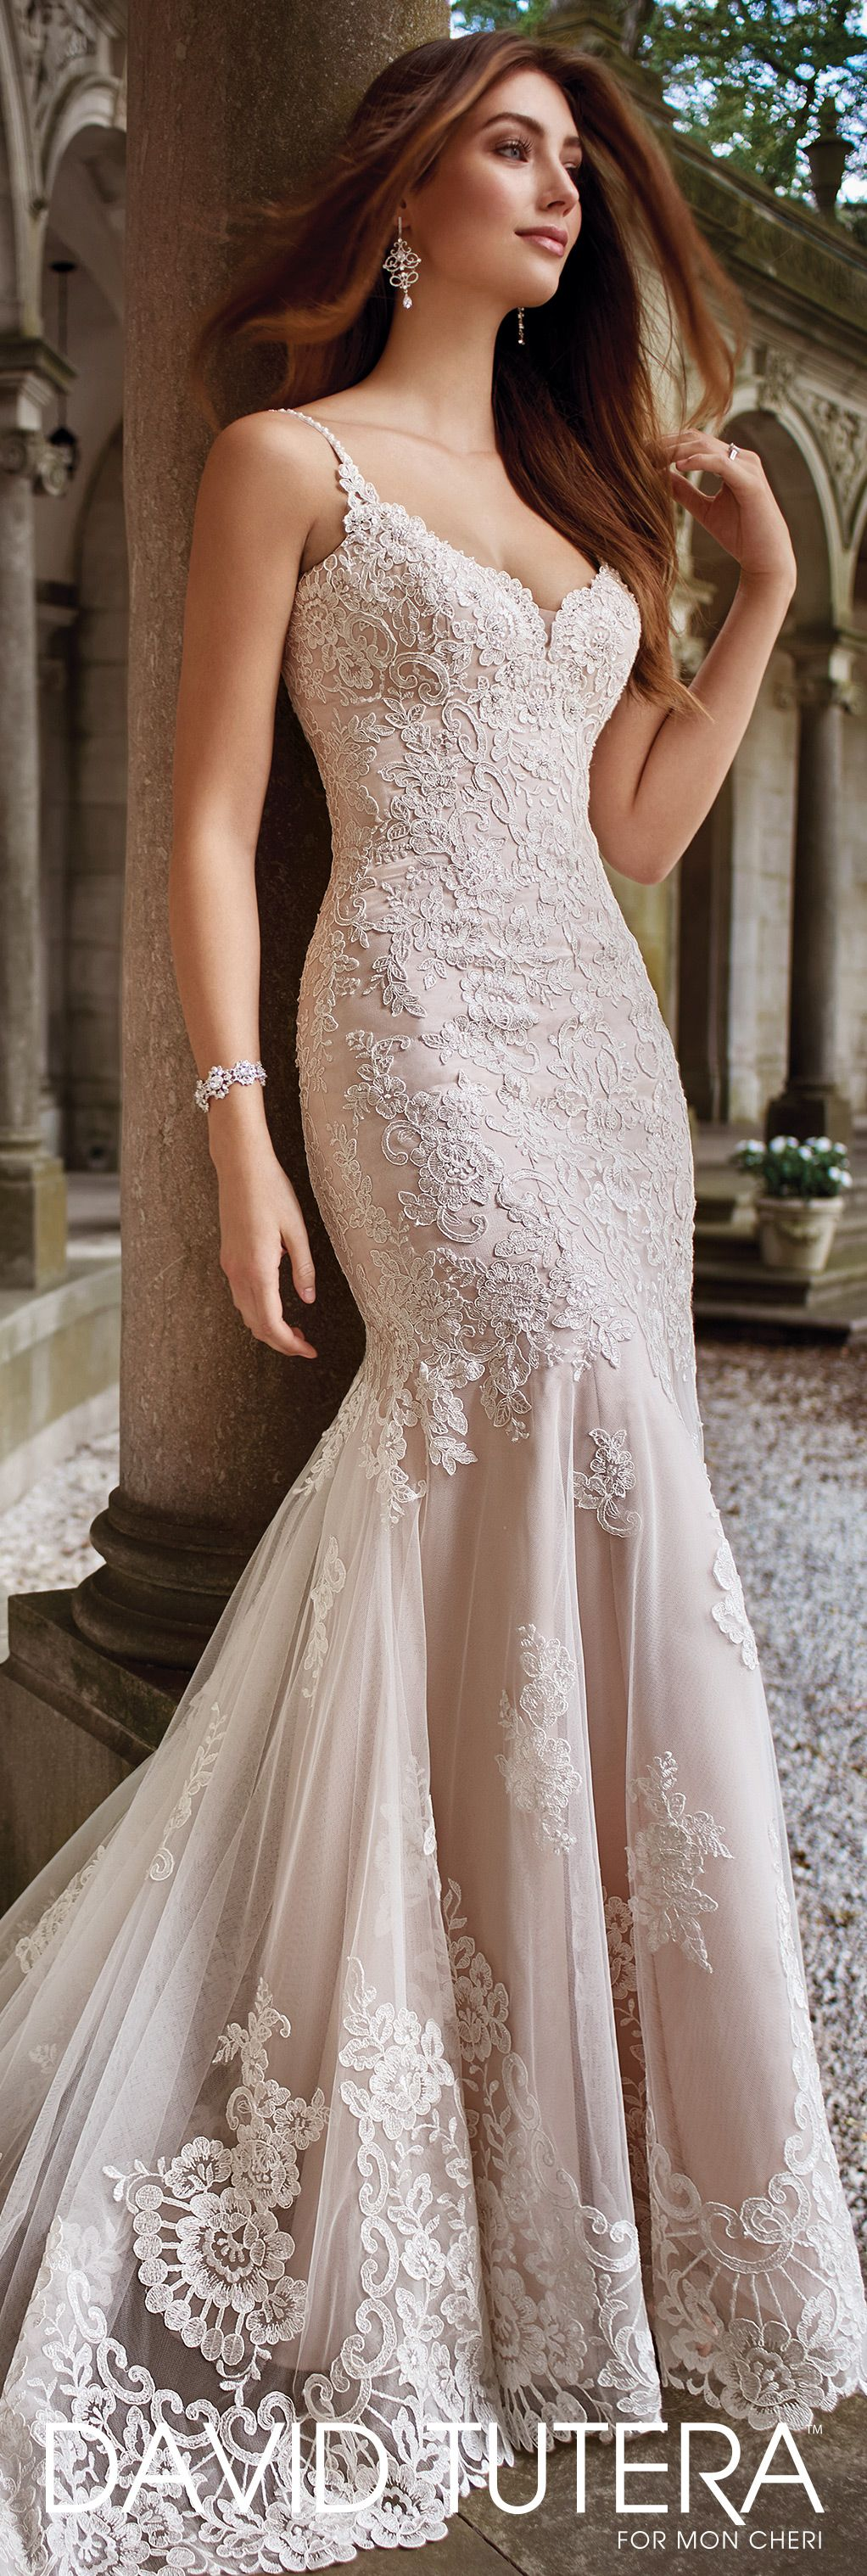 David Tutera for Mon Cheri Spring 2017 Collection - Style No. 117282 Kula - sleeveless lace and tulle sheath wedding dress with sheer lace overskirt